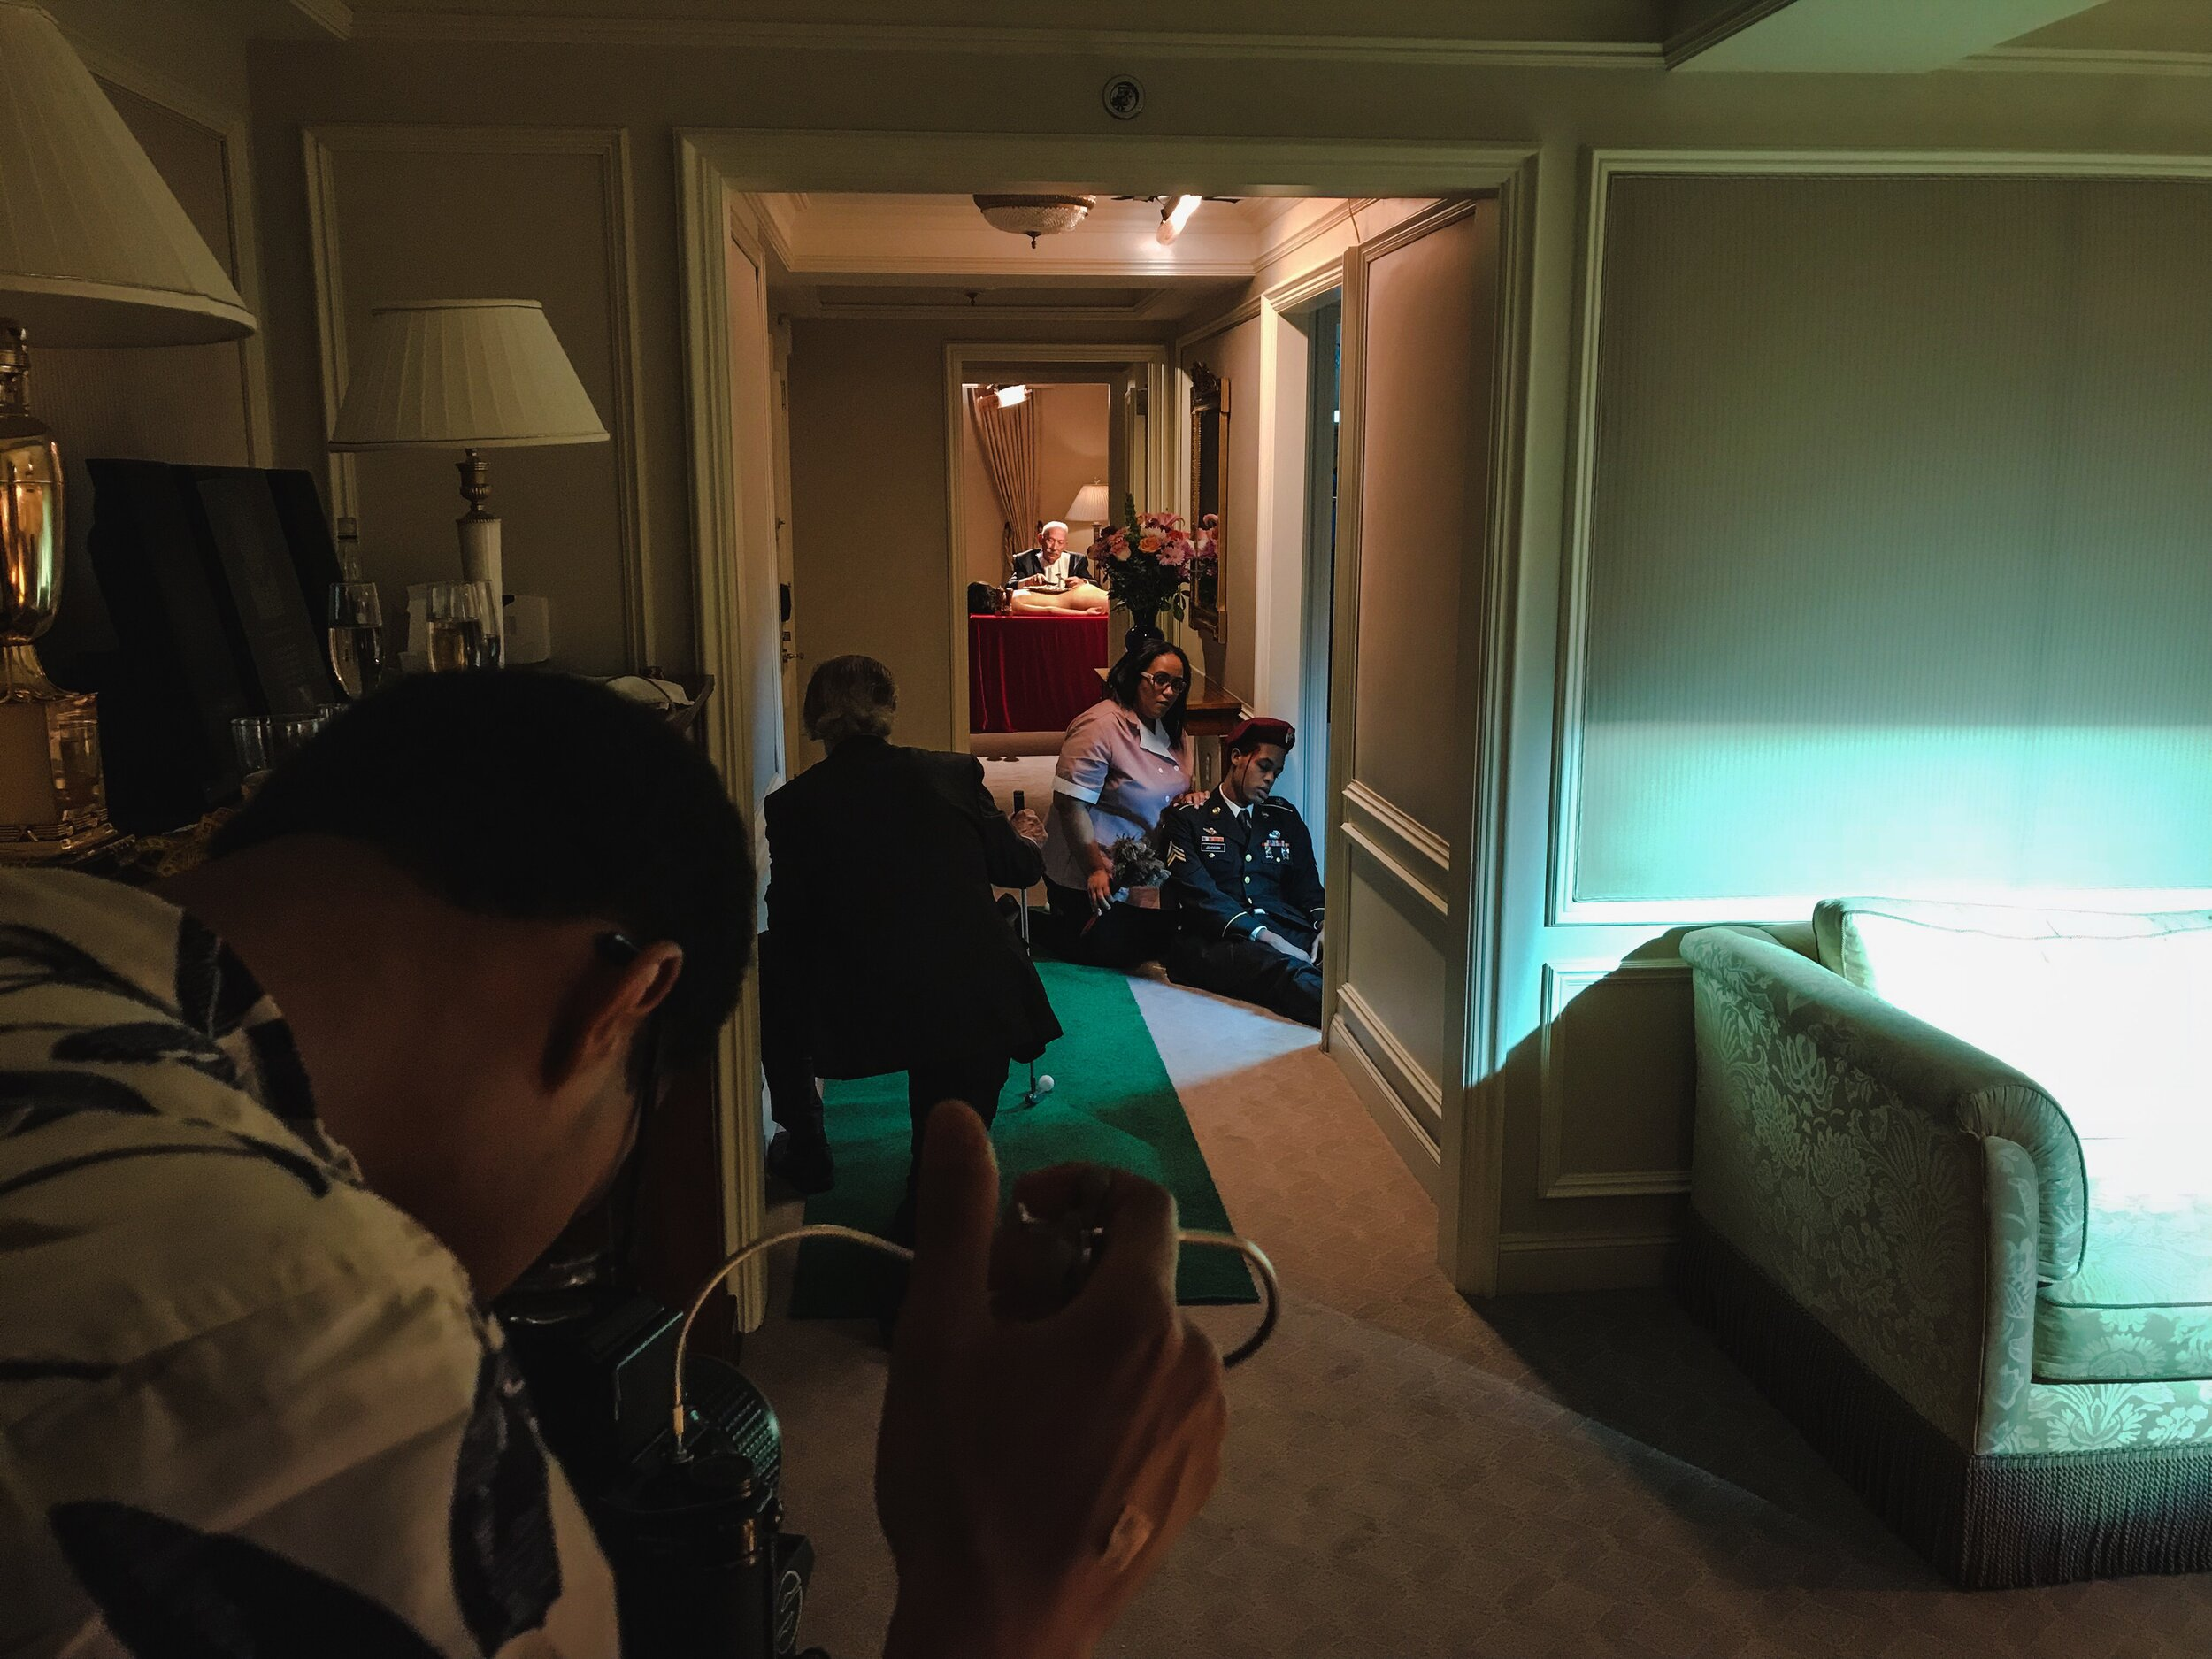 In this Behind-the-Scenes picture, I'm shooting just the hallway portion of the final image.